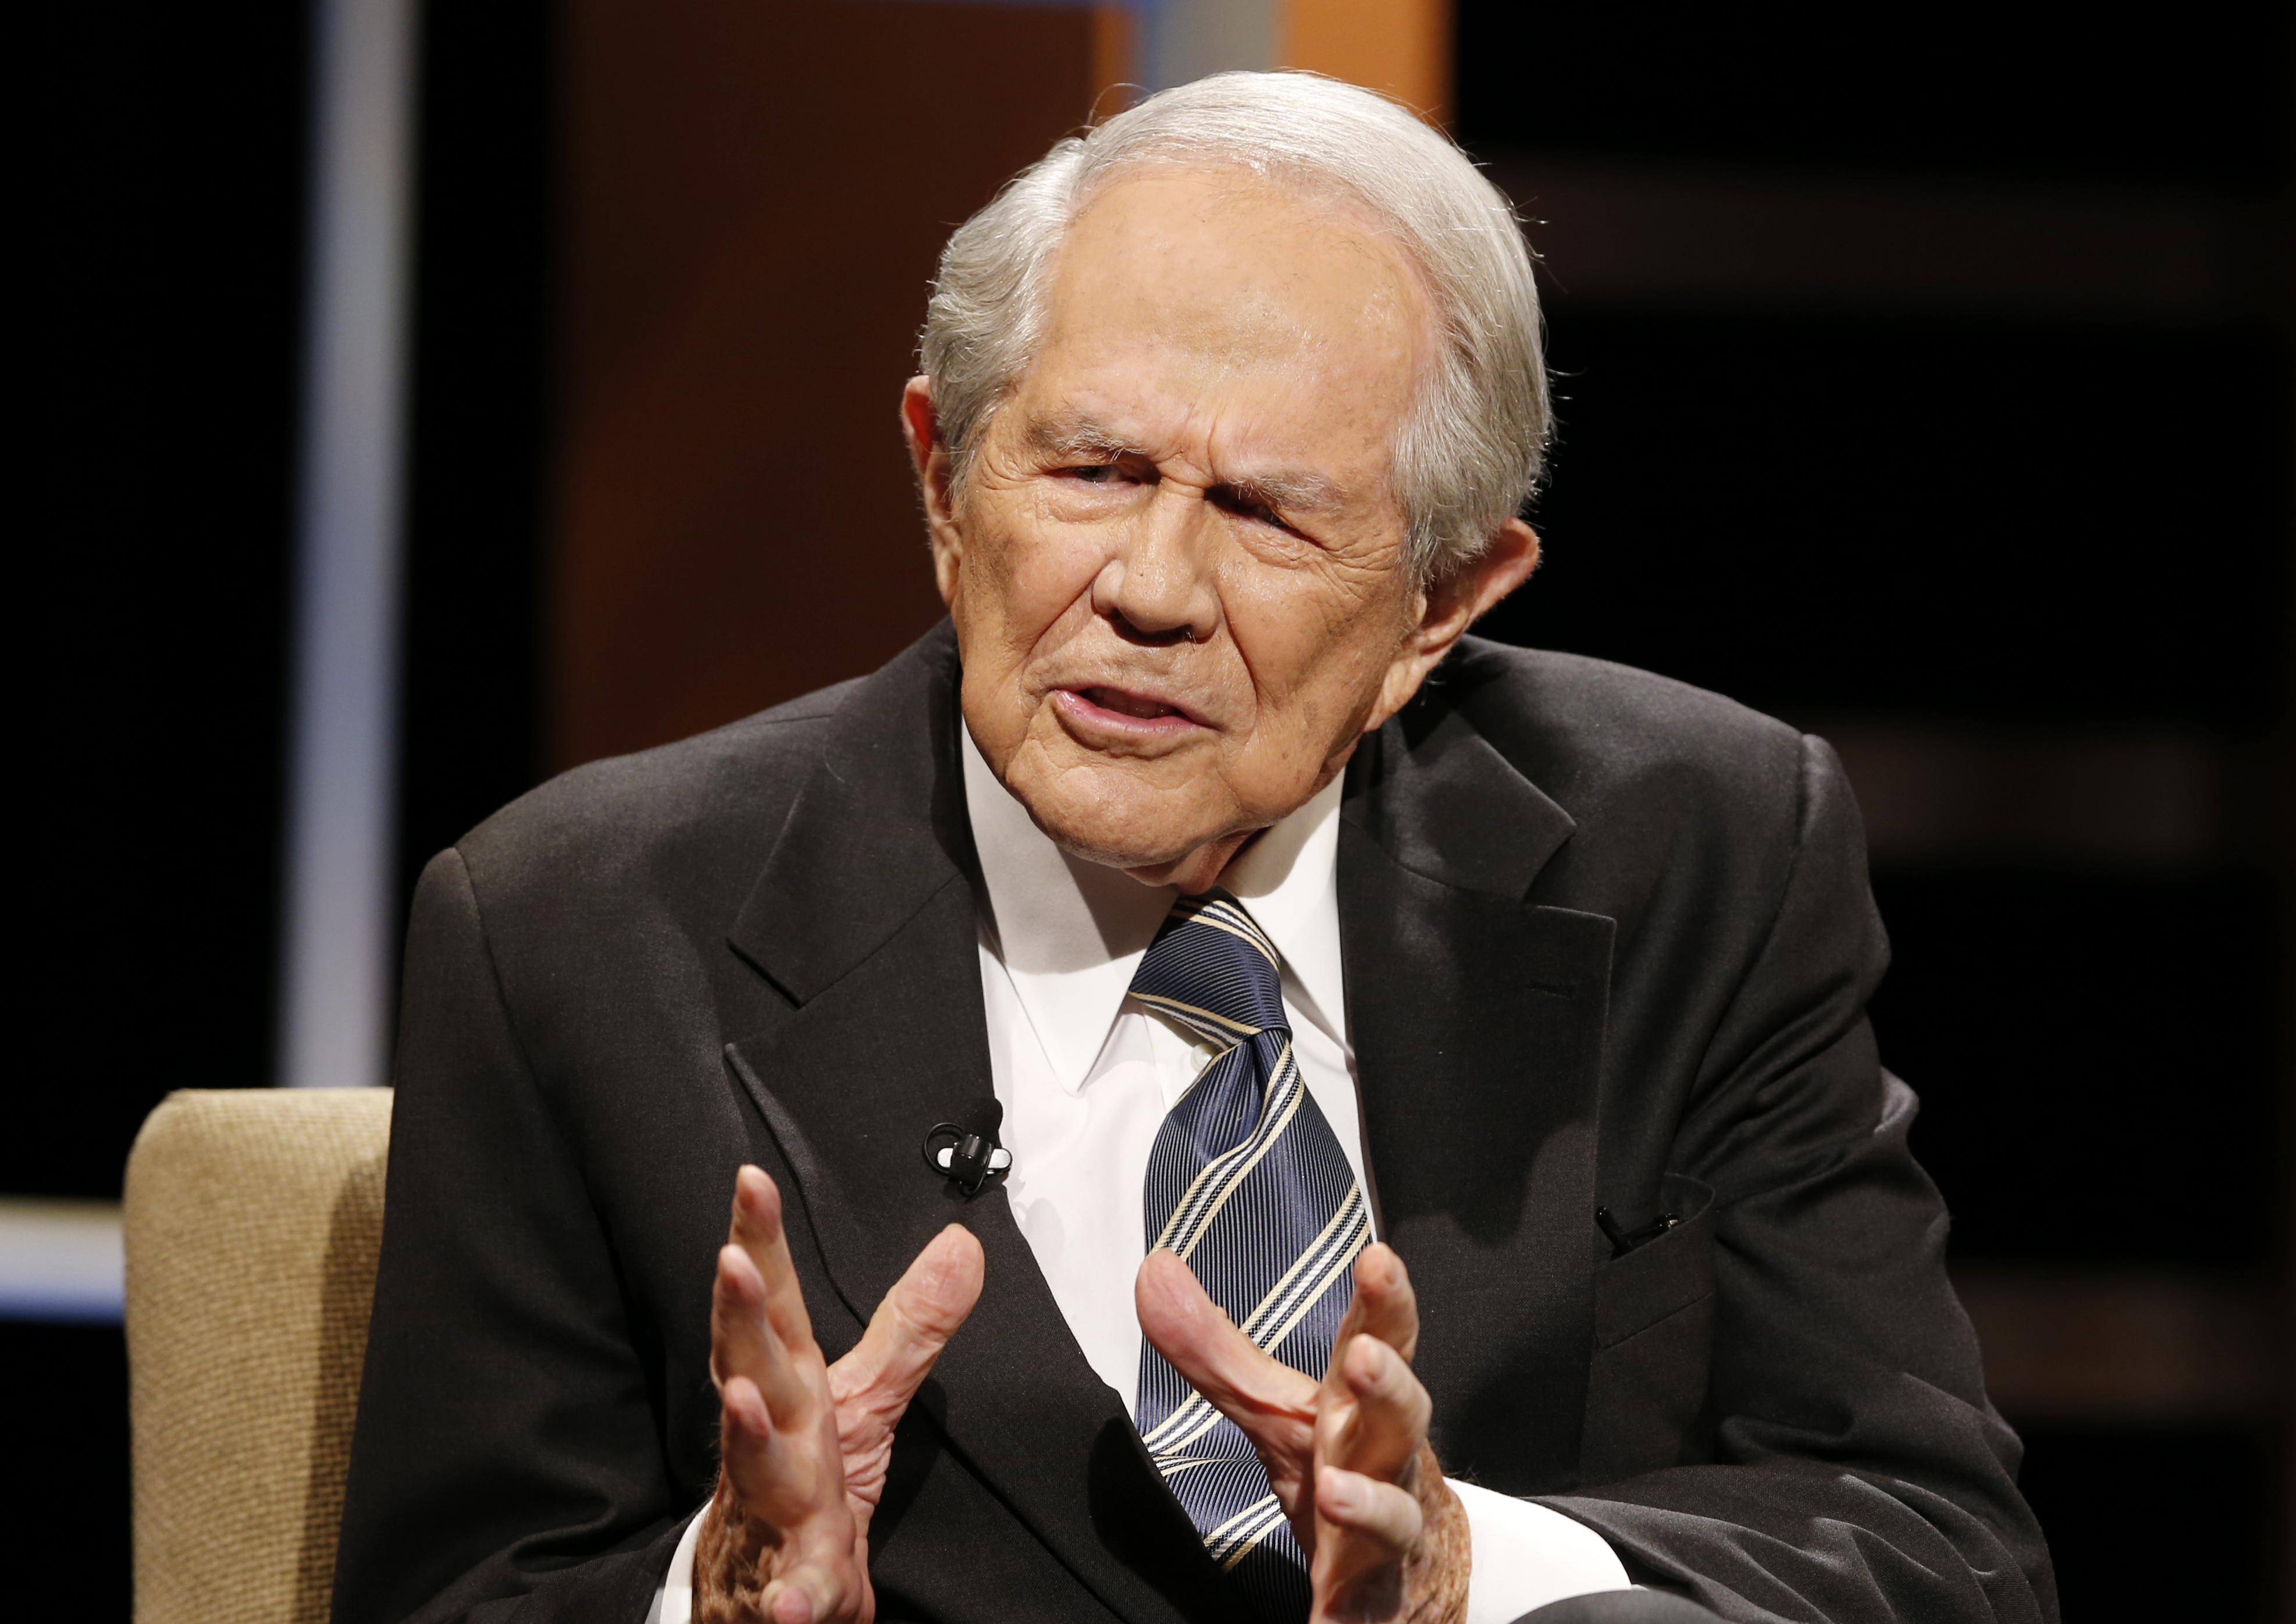 Televangelist Pat Robertson: Alabama's abortion ban is 'extreme' and has 'gone too far'